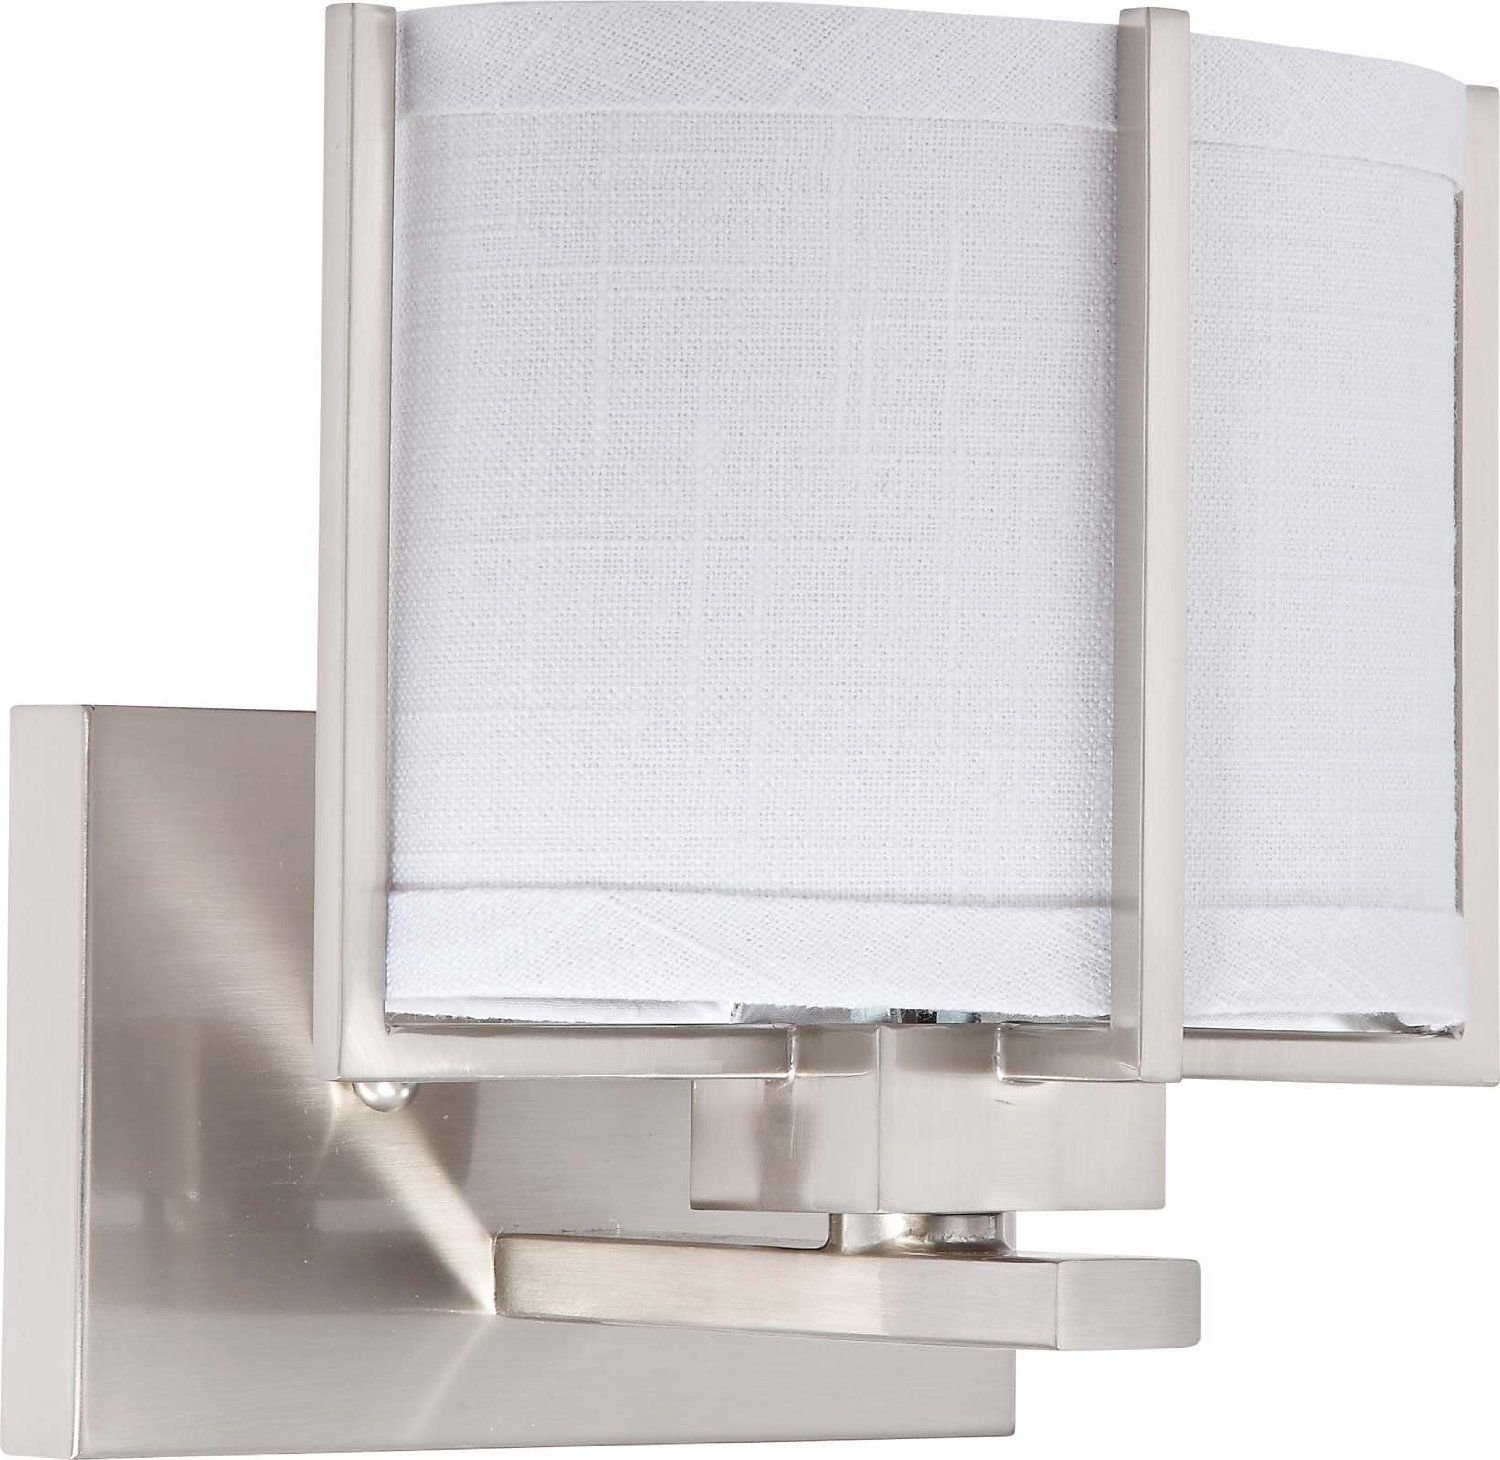 Cheap Wall Sconce Fabric Shade Find Wall Sconce Fabric Shade Deals